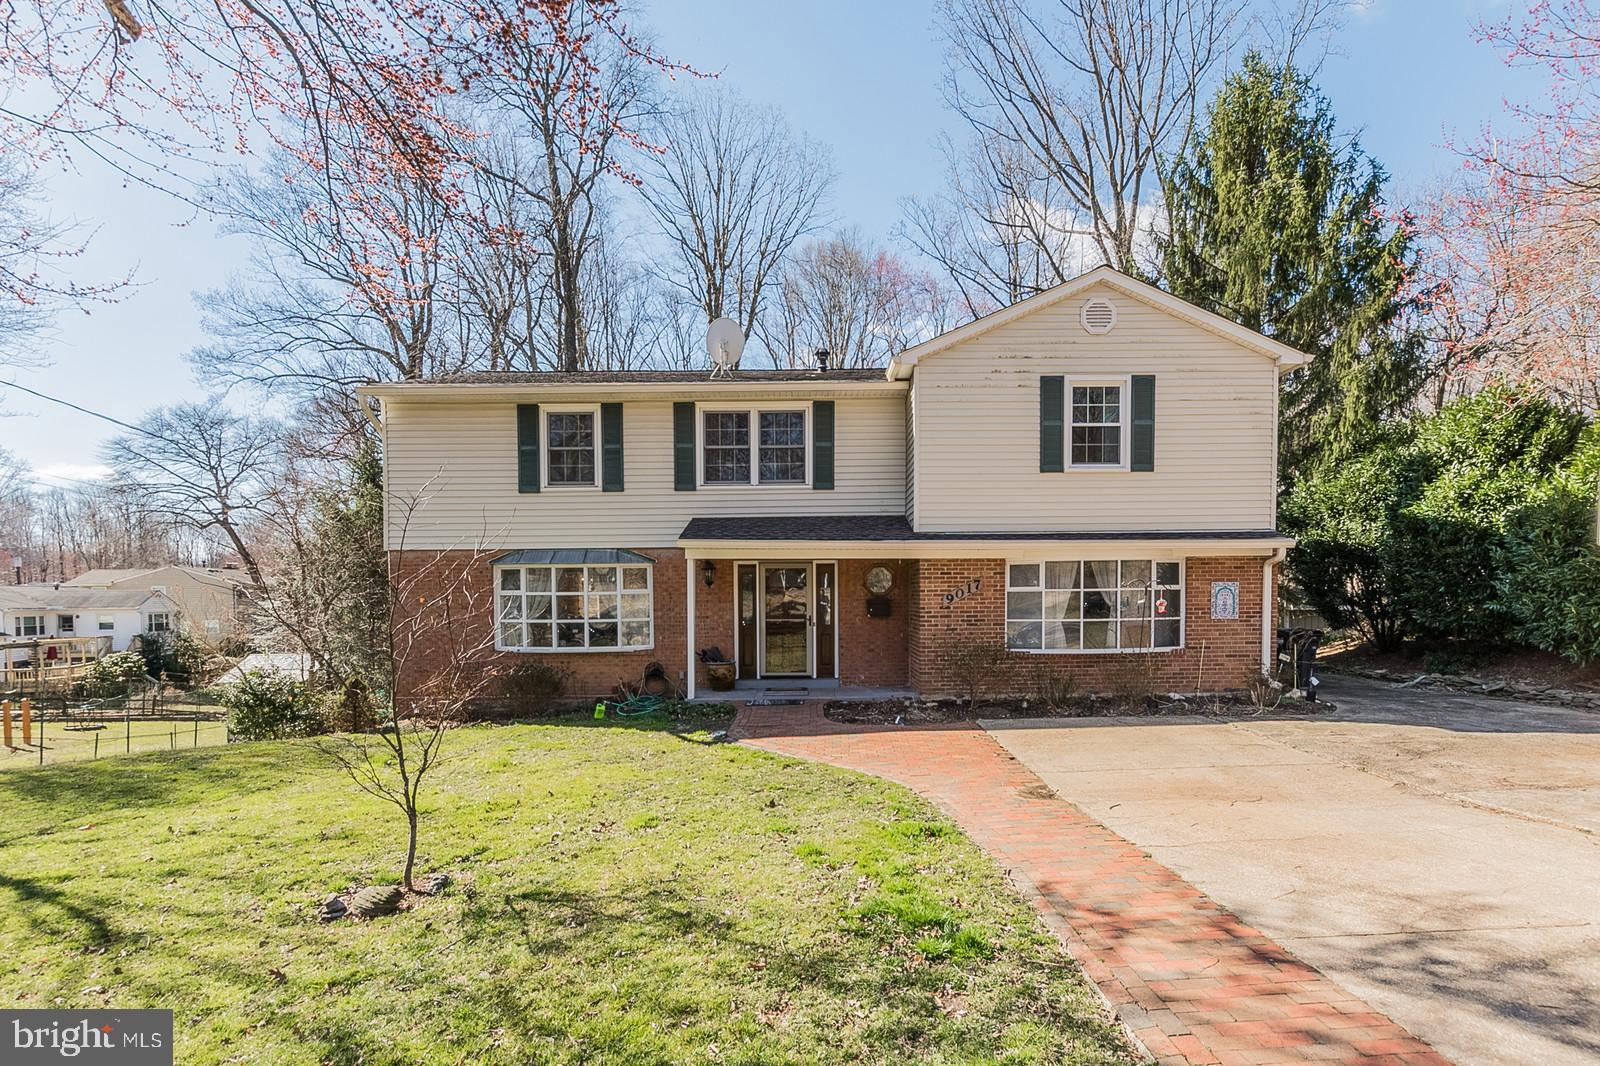 This is a must-see home with special features. Come just to see the view of the majestic Fairfax County park-lands that adjoin the back yard. The property location is close to sought after Canterbury Elementary and Woodson High school. Extremely Close to several shopping plazas and adjacent to the Metro bus stop (with Express Service to the Pentagon and Crystal City) connection. Minutes from I-495.Inside, a large family room with wood burning stove, and a remodeled kitchen are part of a walk-around design that includes three bay windows with window seats and access to a large deck. Both the deck and the master bedroom upstairs are among the spots where you will enjoy the natural views of woods and creek behind the house. There is a fully finished basement with 4 closets and built-in cabinets and shelving units. Upstairs 5 bedrooms include 3 walk-in closets and 2 master bathrooms. The master bedroom has 2 closets and attached master bathroom, four large built-in cabinet units, and the most glorious view in the neighborhood. New Windows (2014), Roof (2103), HVAC (2012), HW Heater (2008), Kitchen Remodeled (2016), and many other improvements over the years. Community pool available with purchase of membership